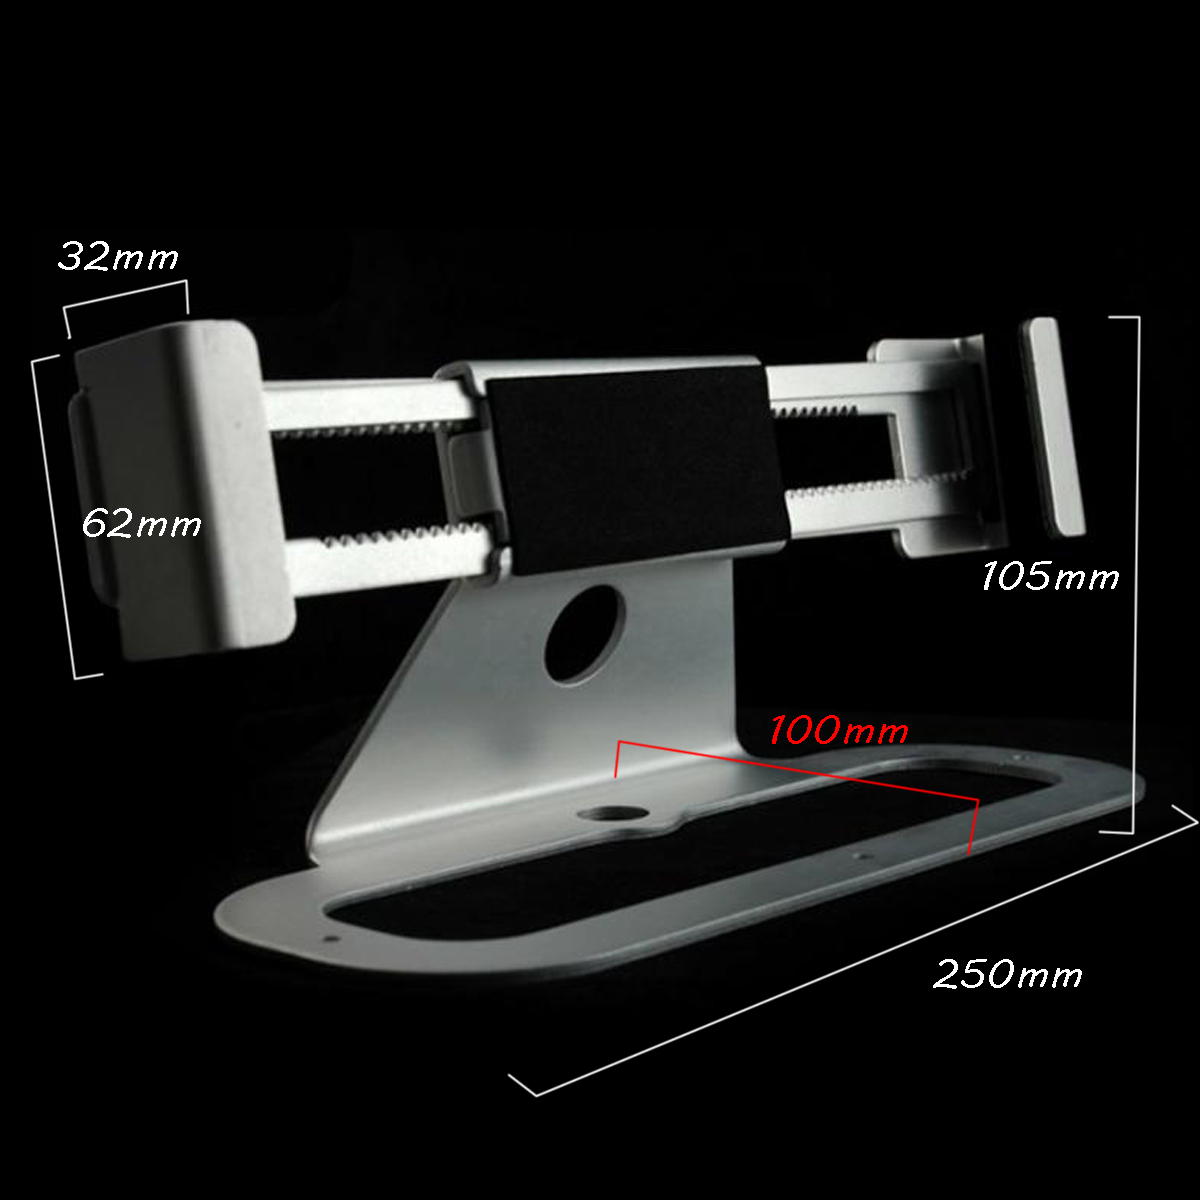 Security Lock Stand Anti-theft Holder Laptop Store Display Metal Mounts